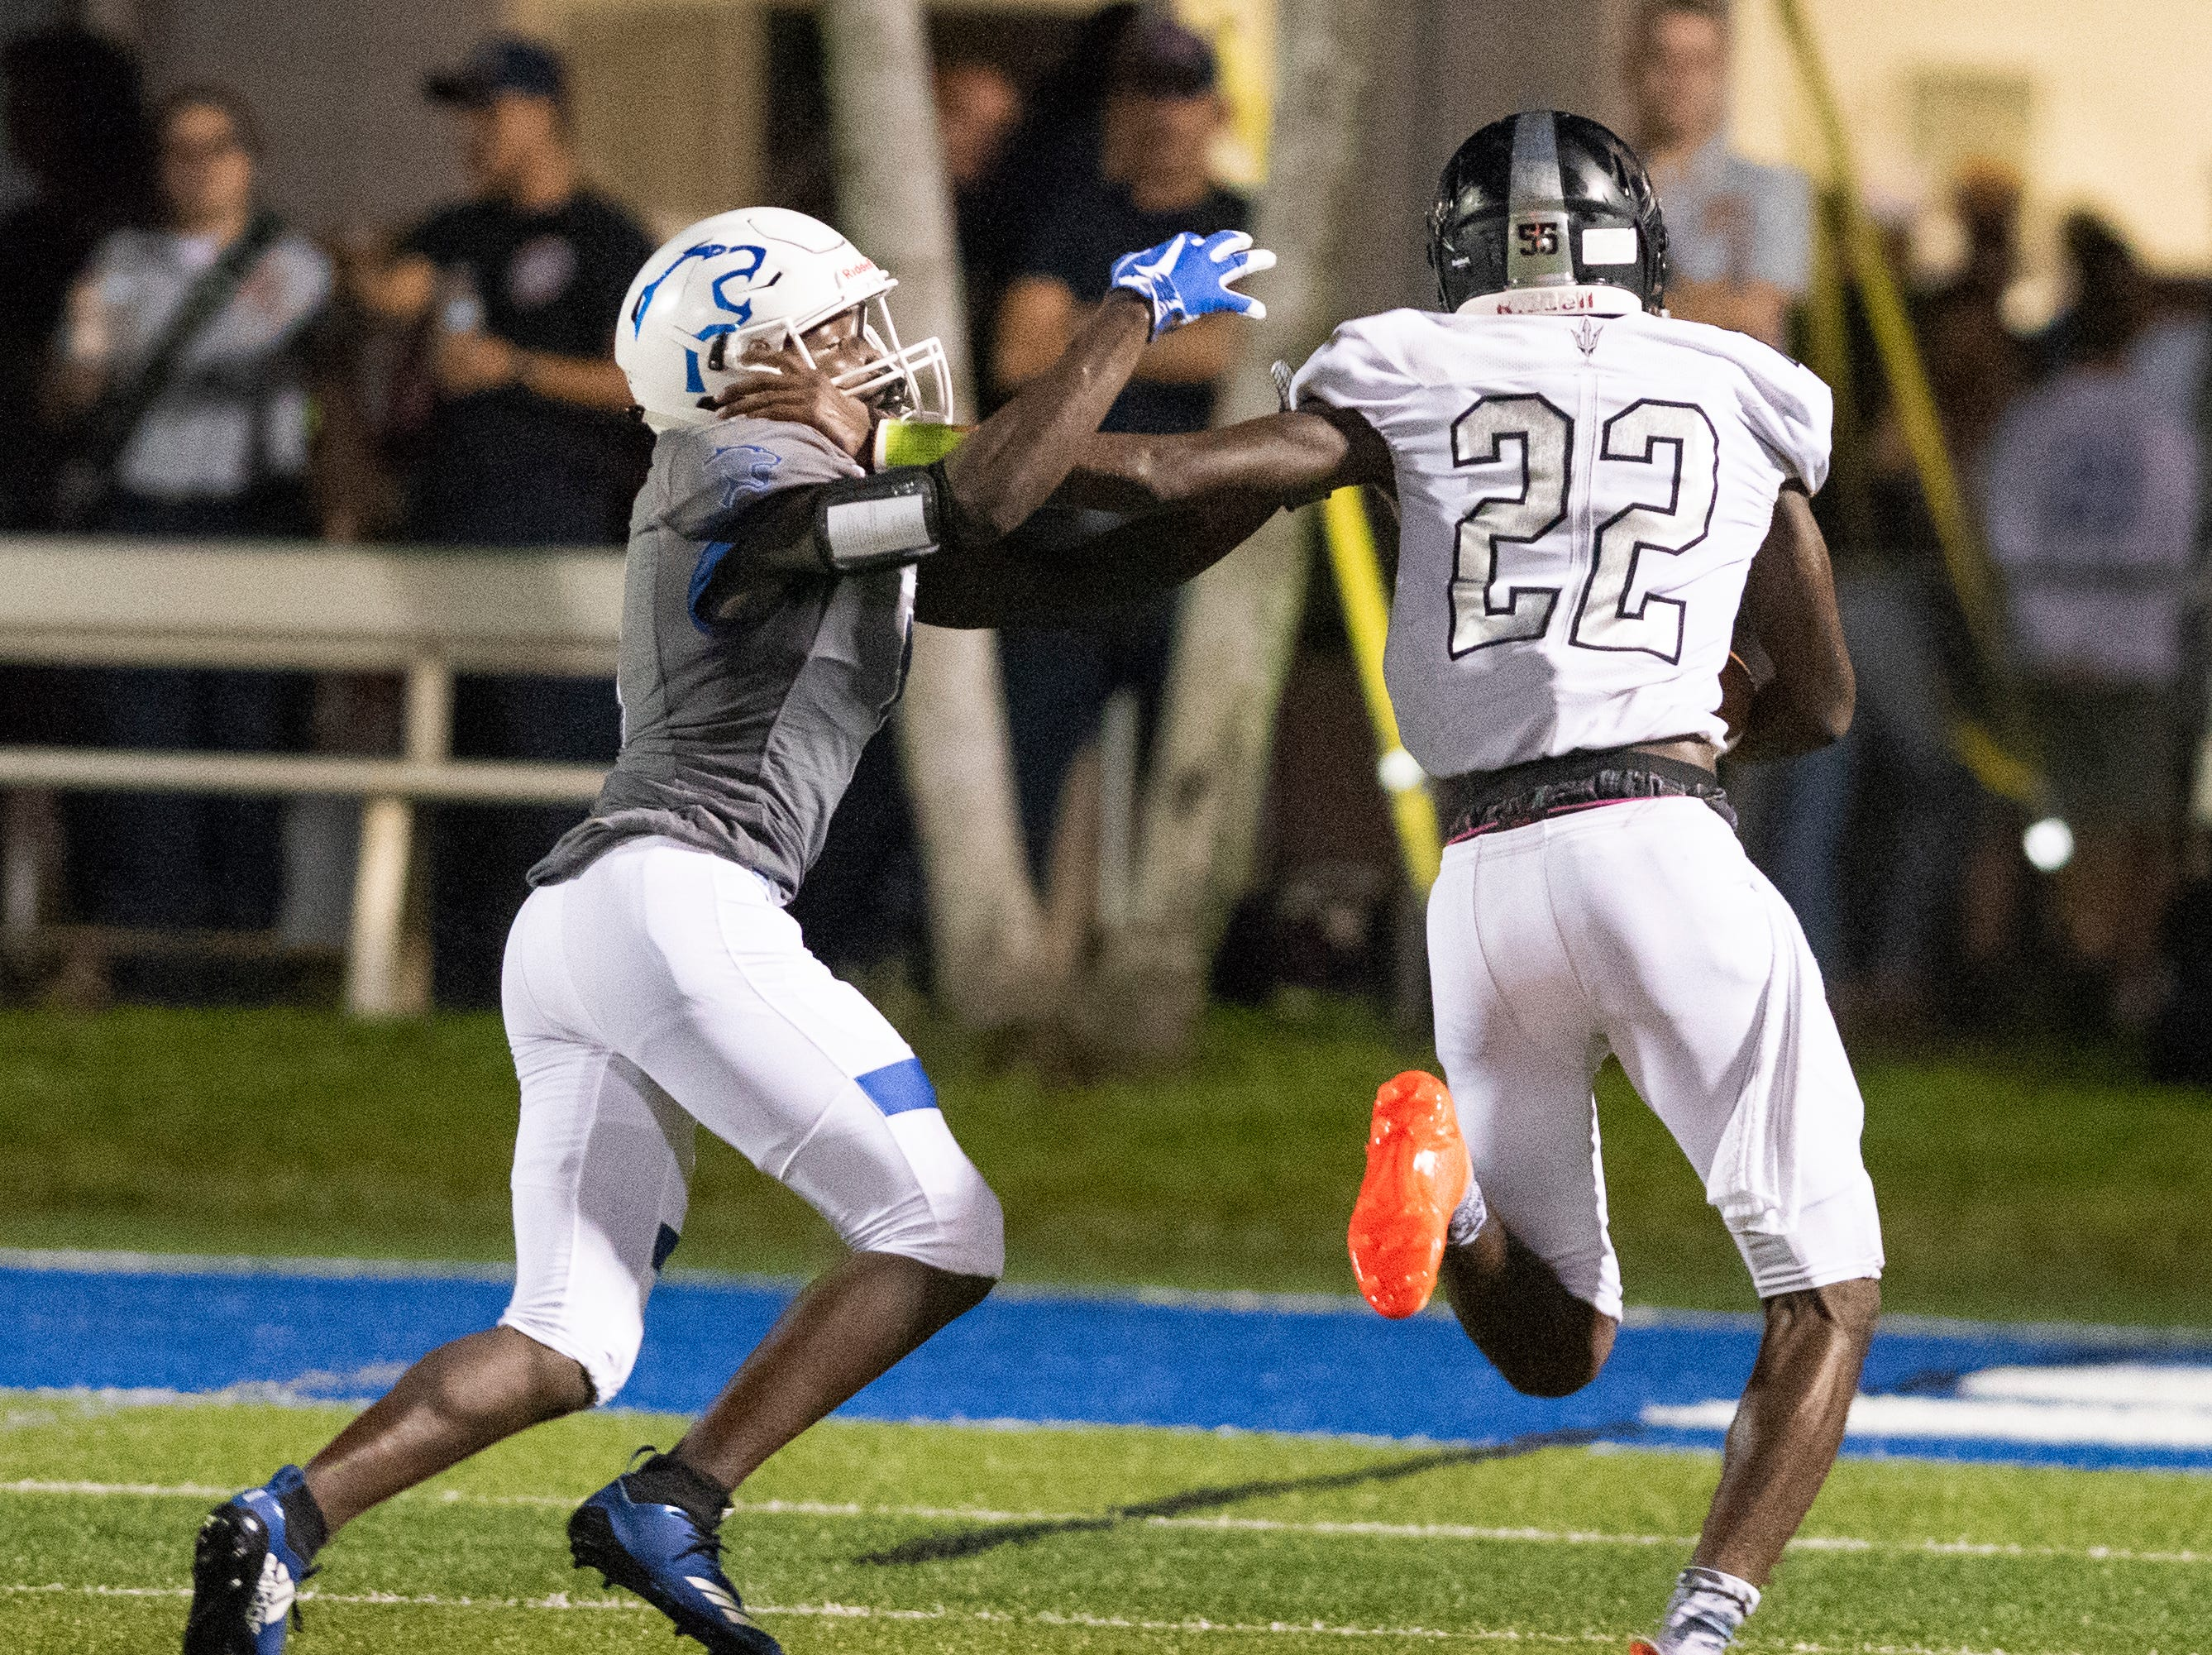 Mariner quarterback Rashawn Hunter stiff arms Deshaun Duverge of Barron Collier on his way to score a touchdown  during the game at Barron Collier High Friday night, September 21, 2018.